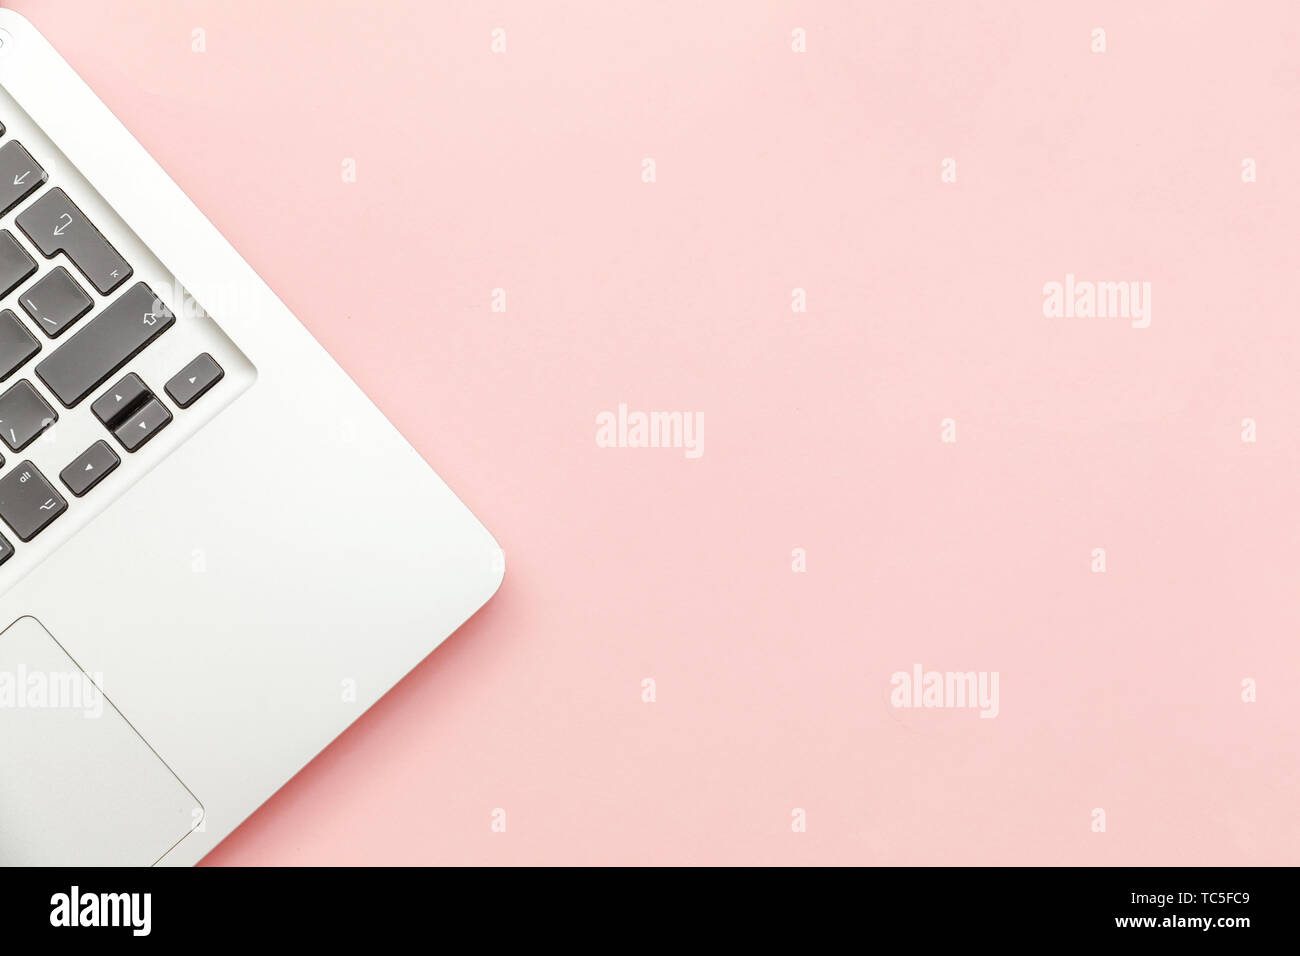 Keyboard Laptop Computer Isolated On Pink Pastel Desk Background